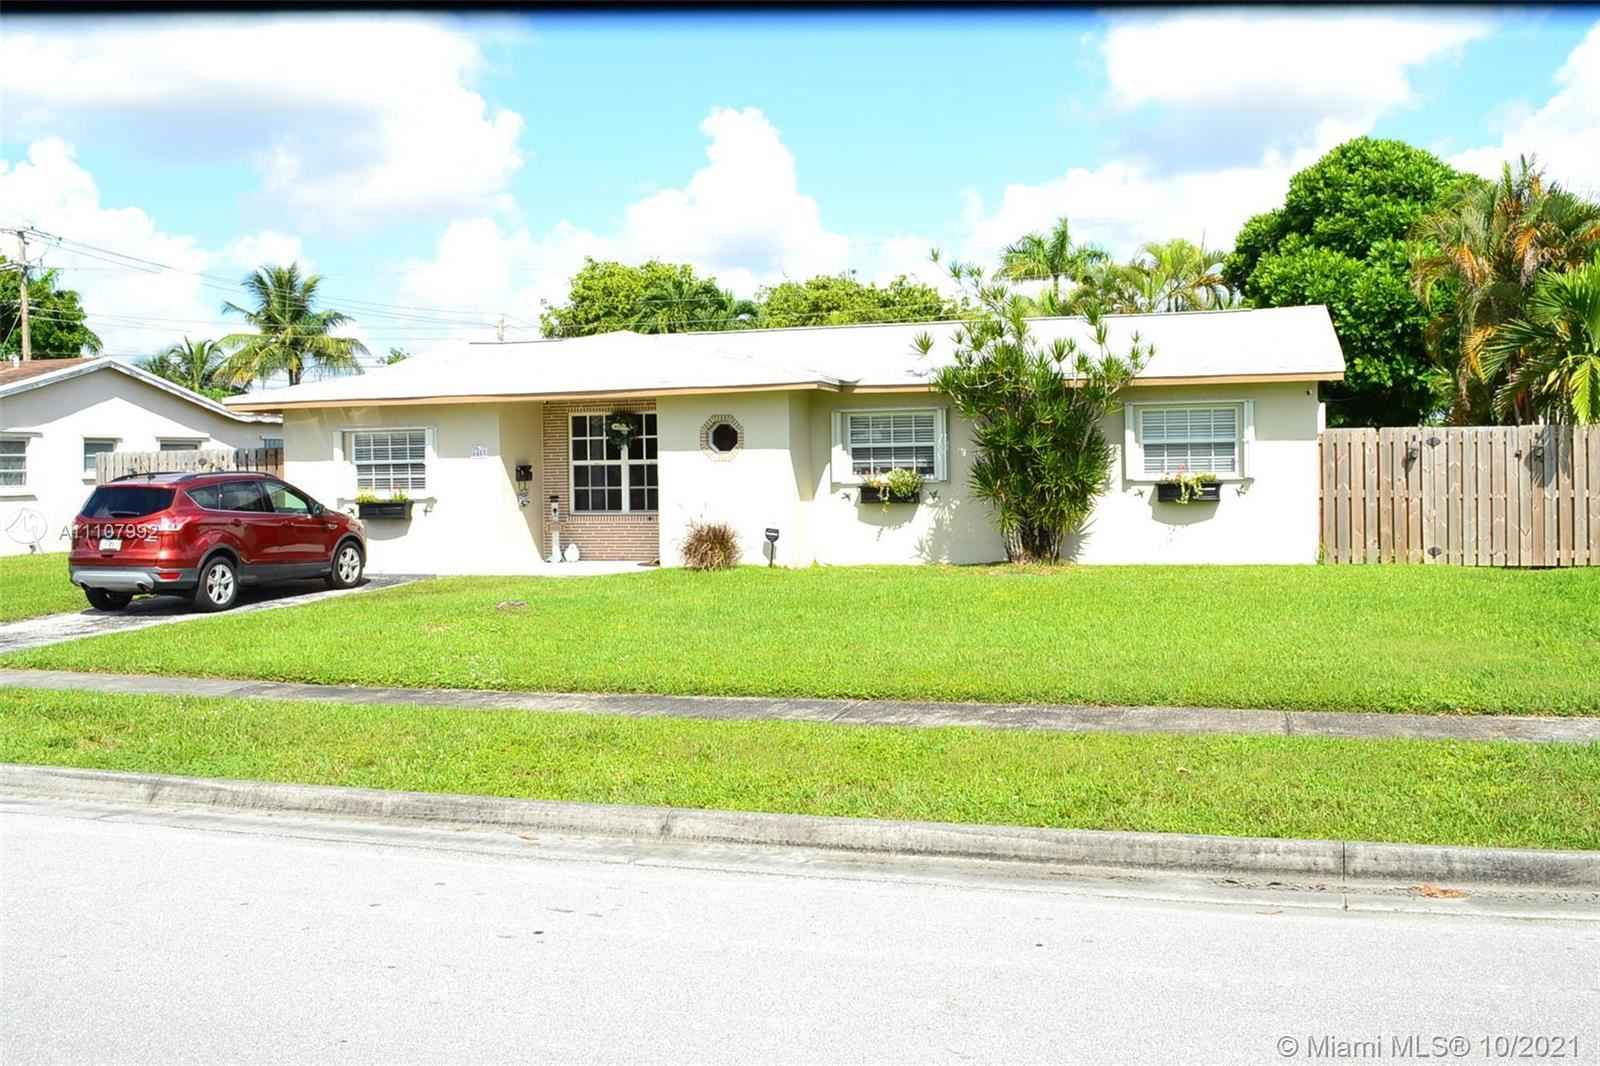 Photo of 6453 NW 20th St, Margate, FL 33063 (MLS # A11107992)